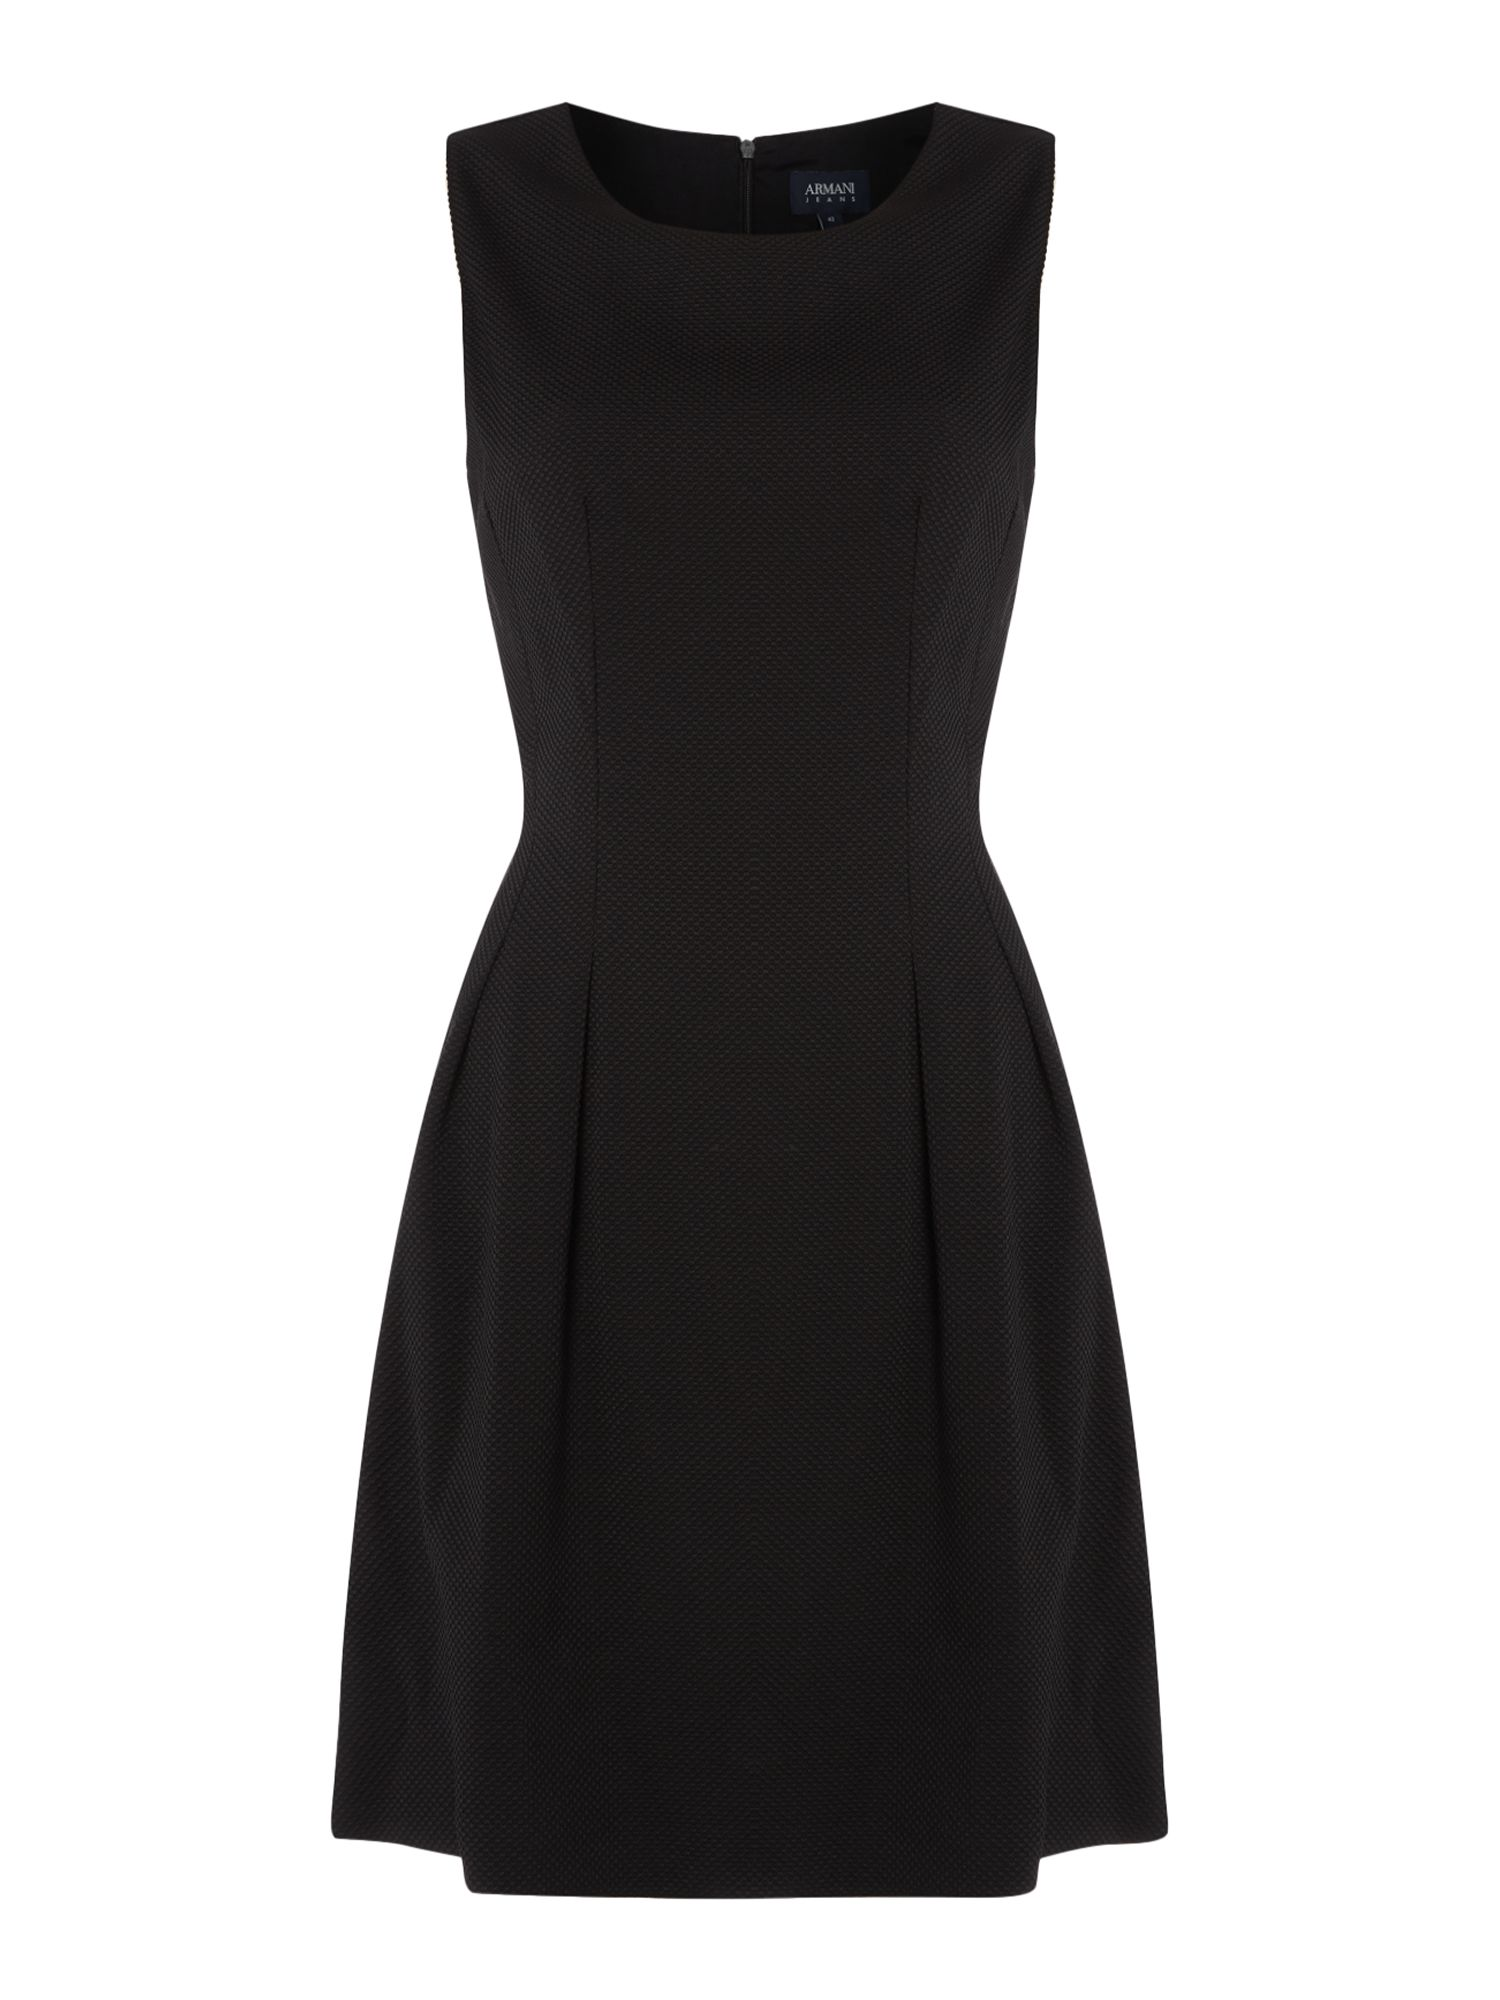 Armani Jeans Sleeveless jacquard dress in nero Black